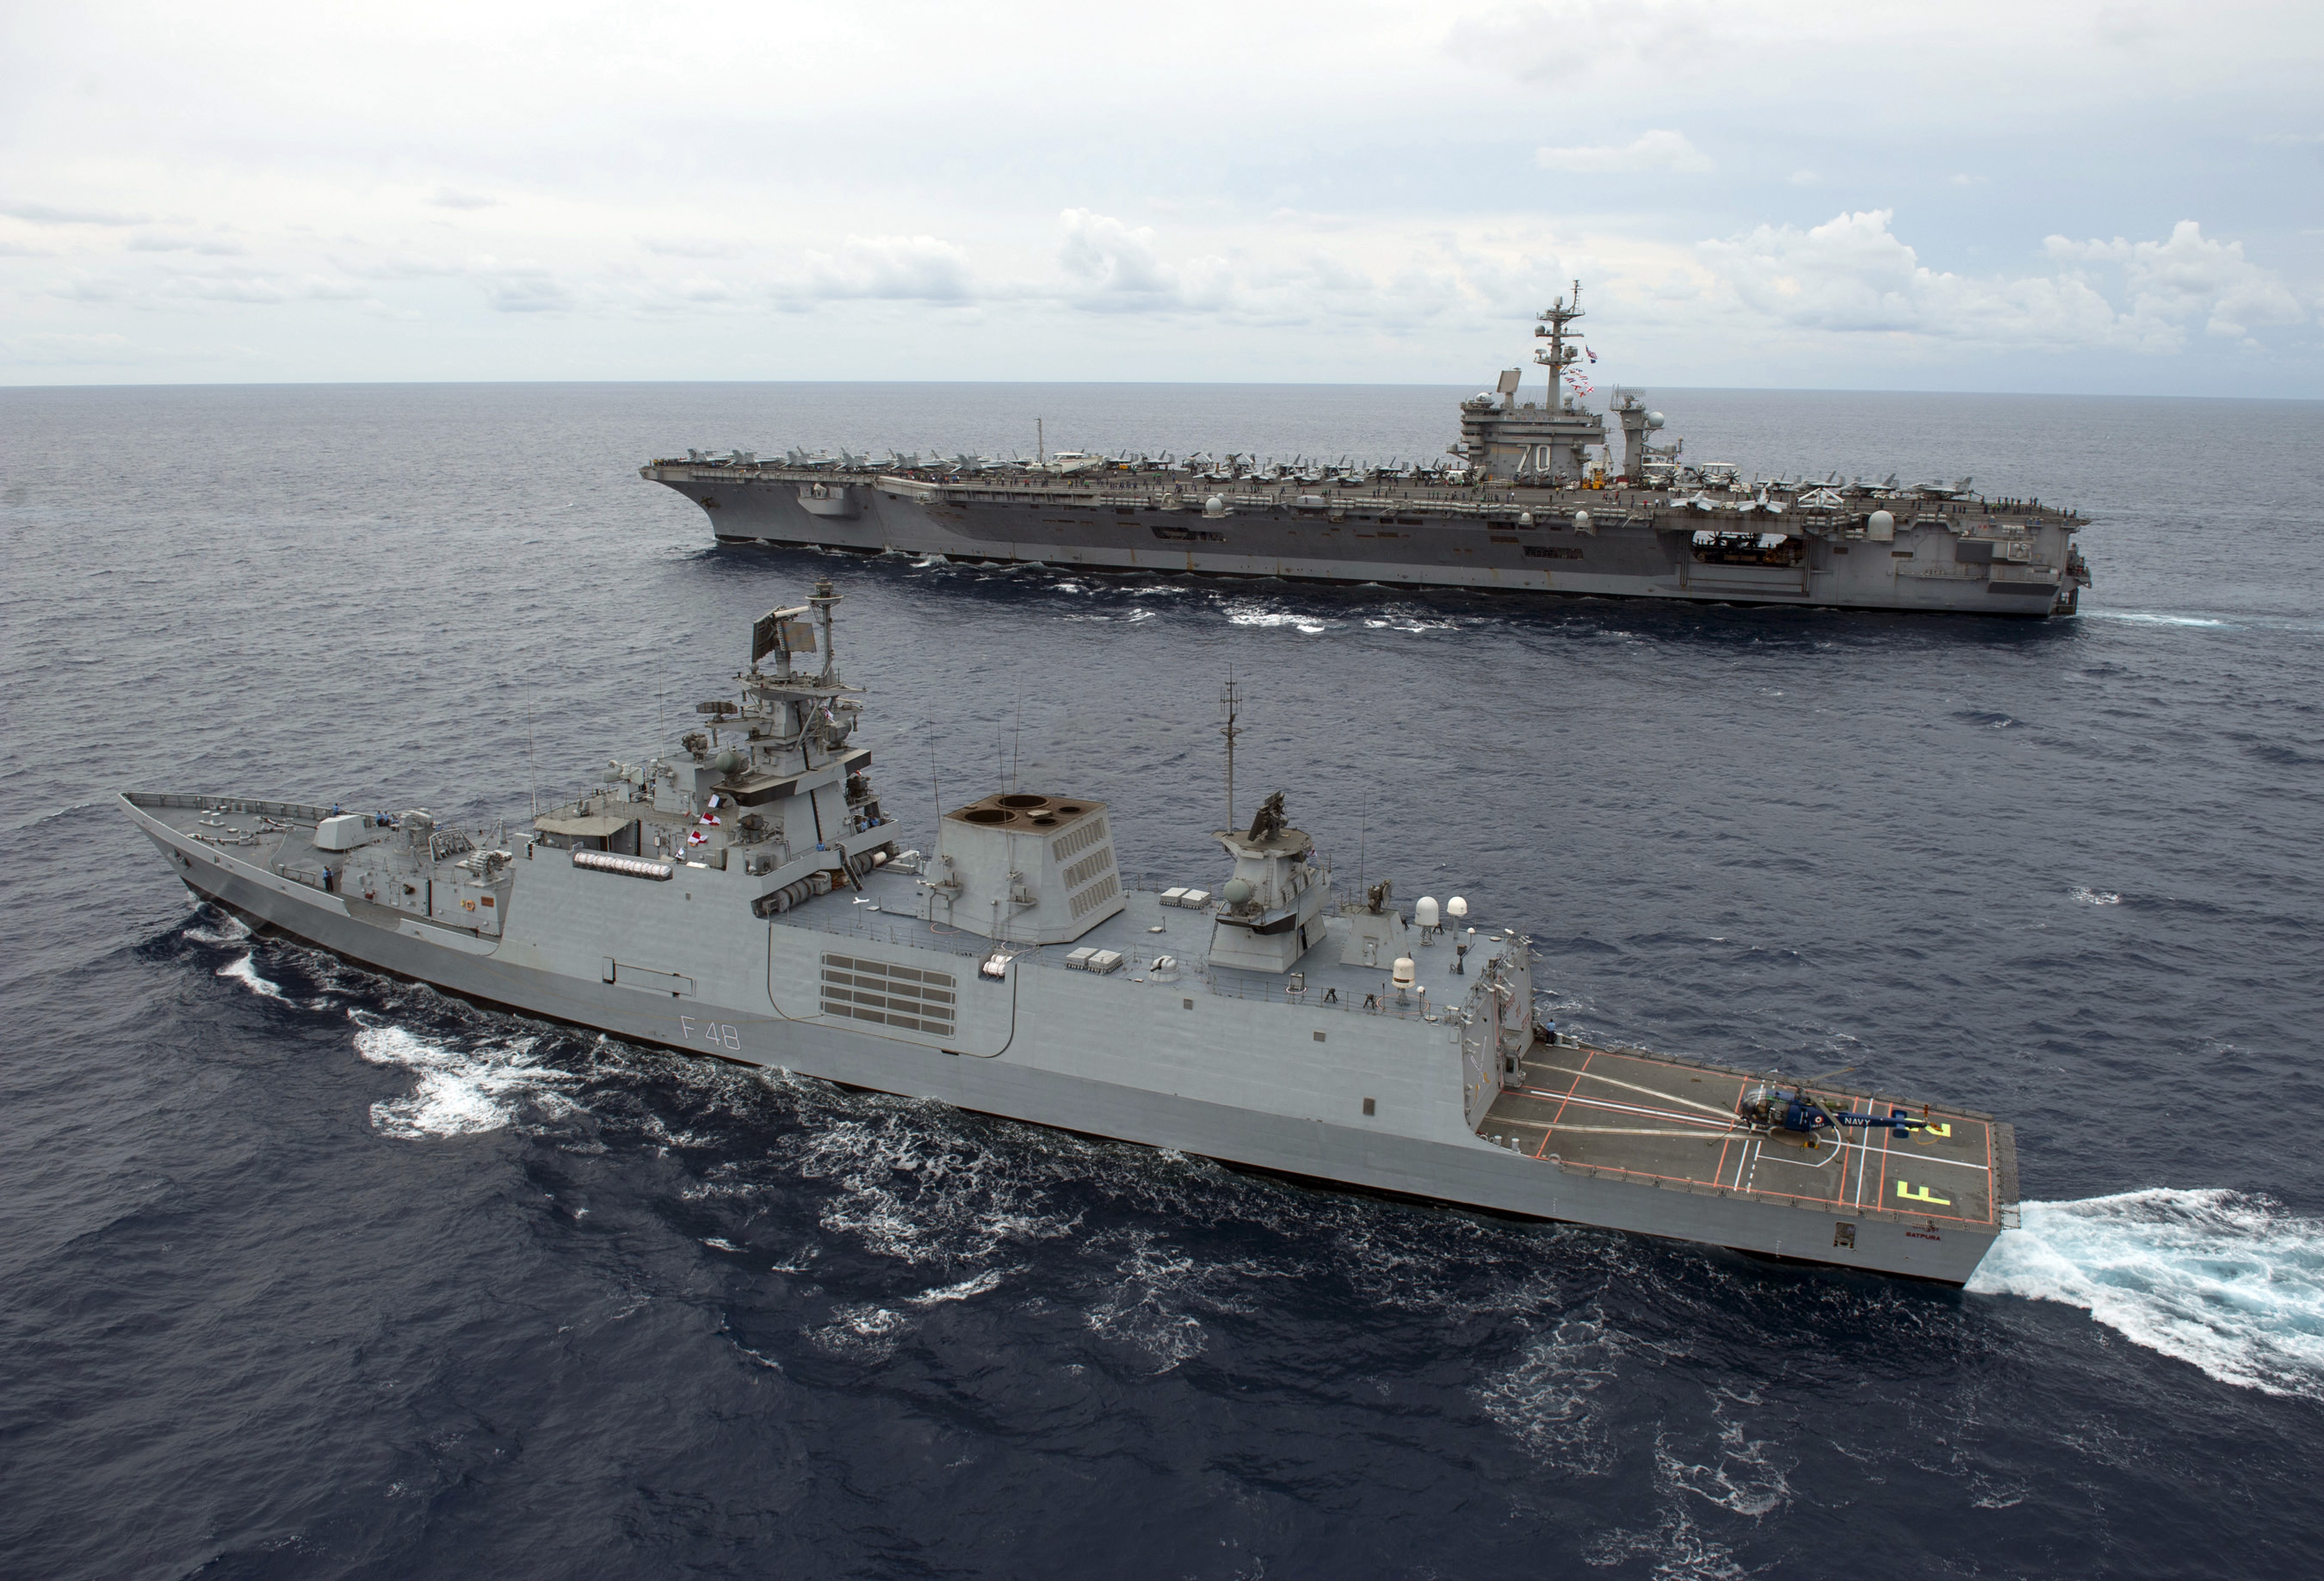 A US Super-carrier sails alongside an Indian stealth Frigate. Source - Net.